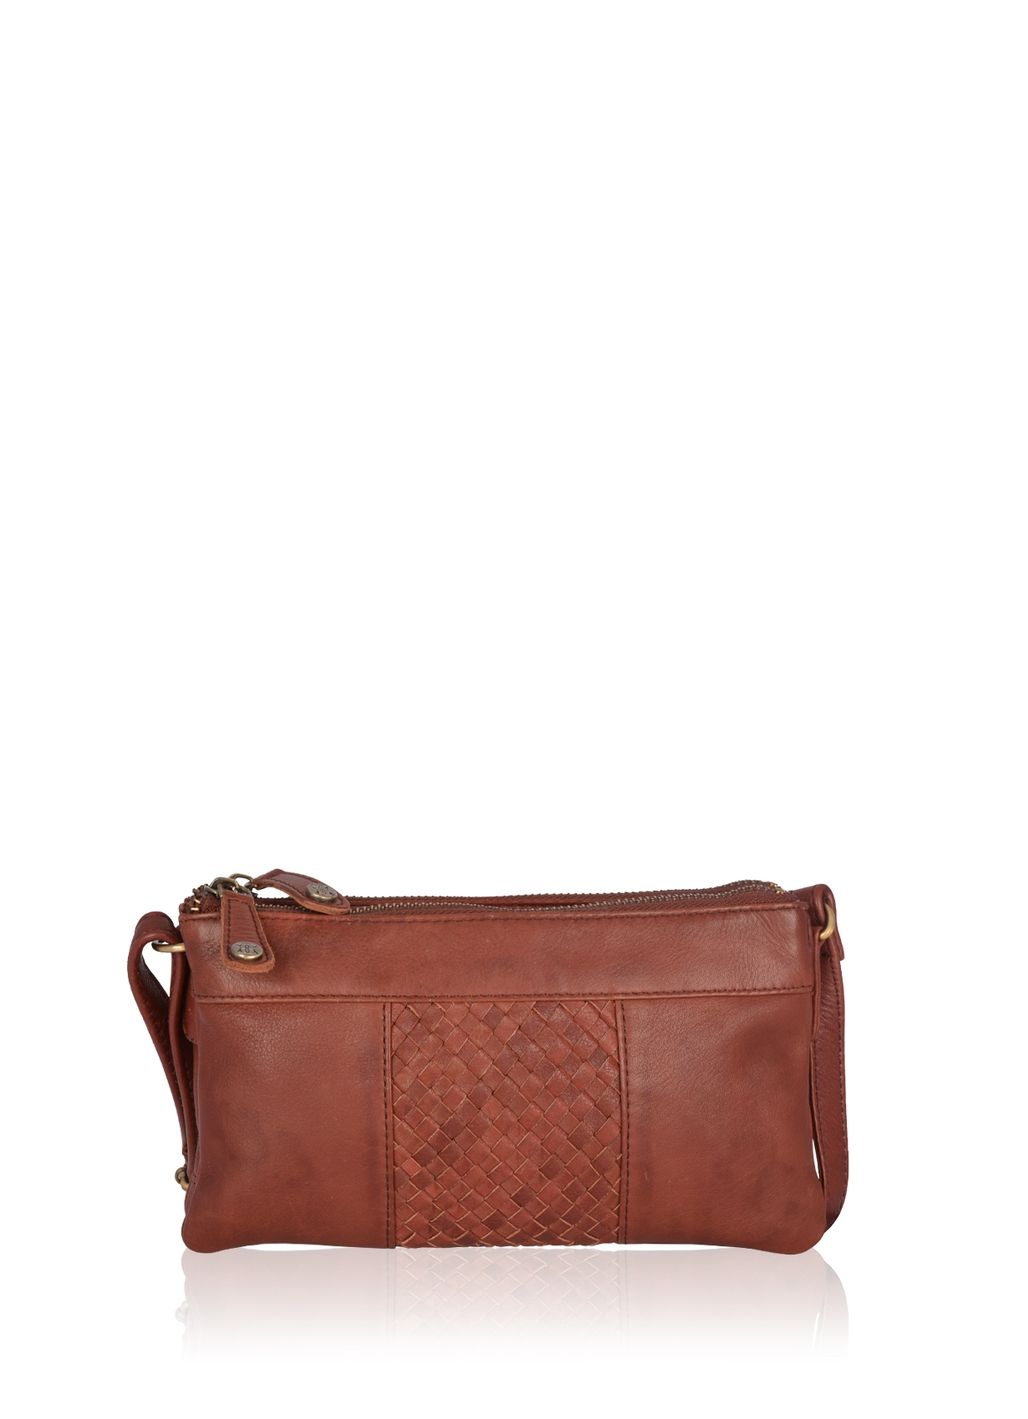 Gosforth Leather Cross Body Bag in Burgundy